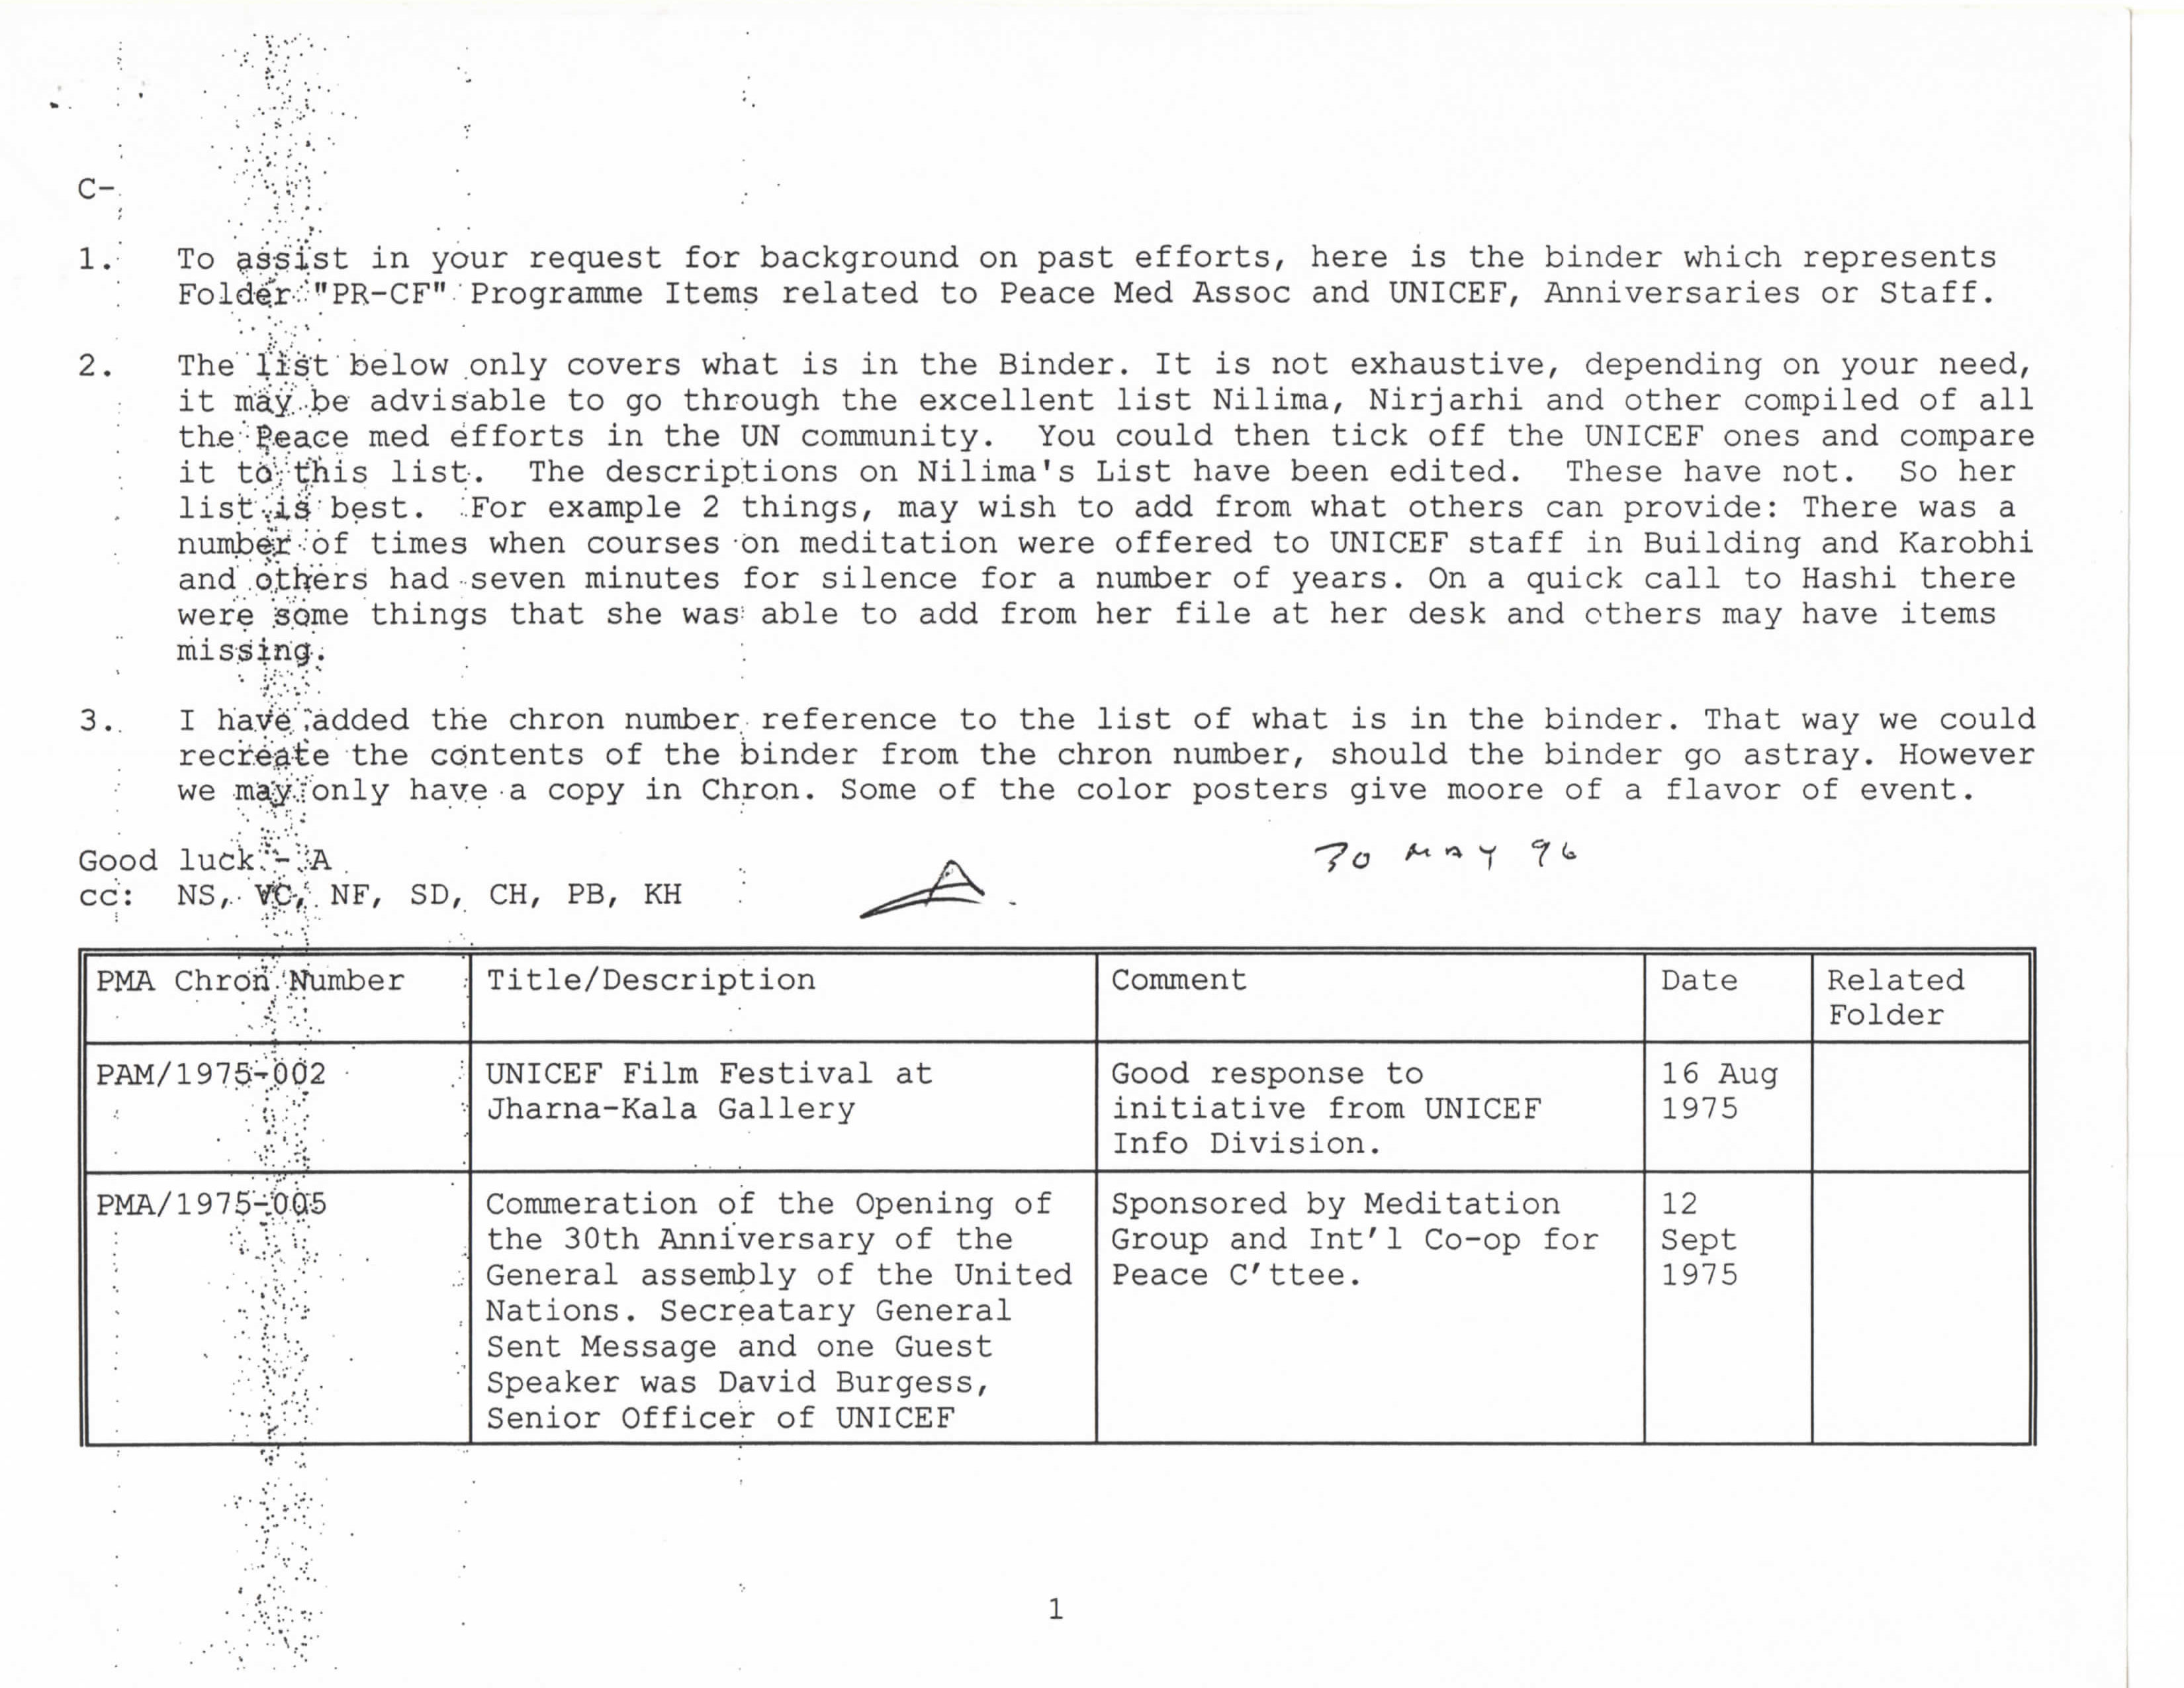 1994-12-dec-31-unicef-with-med-grp-1975-1994-list_Page_1